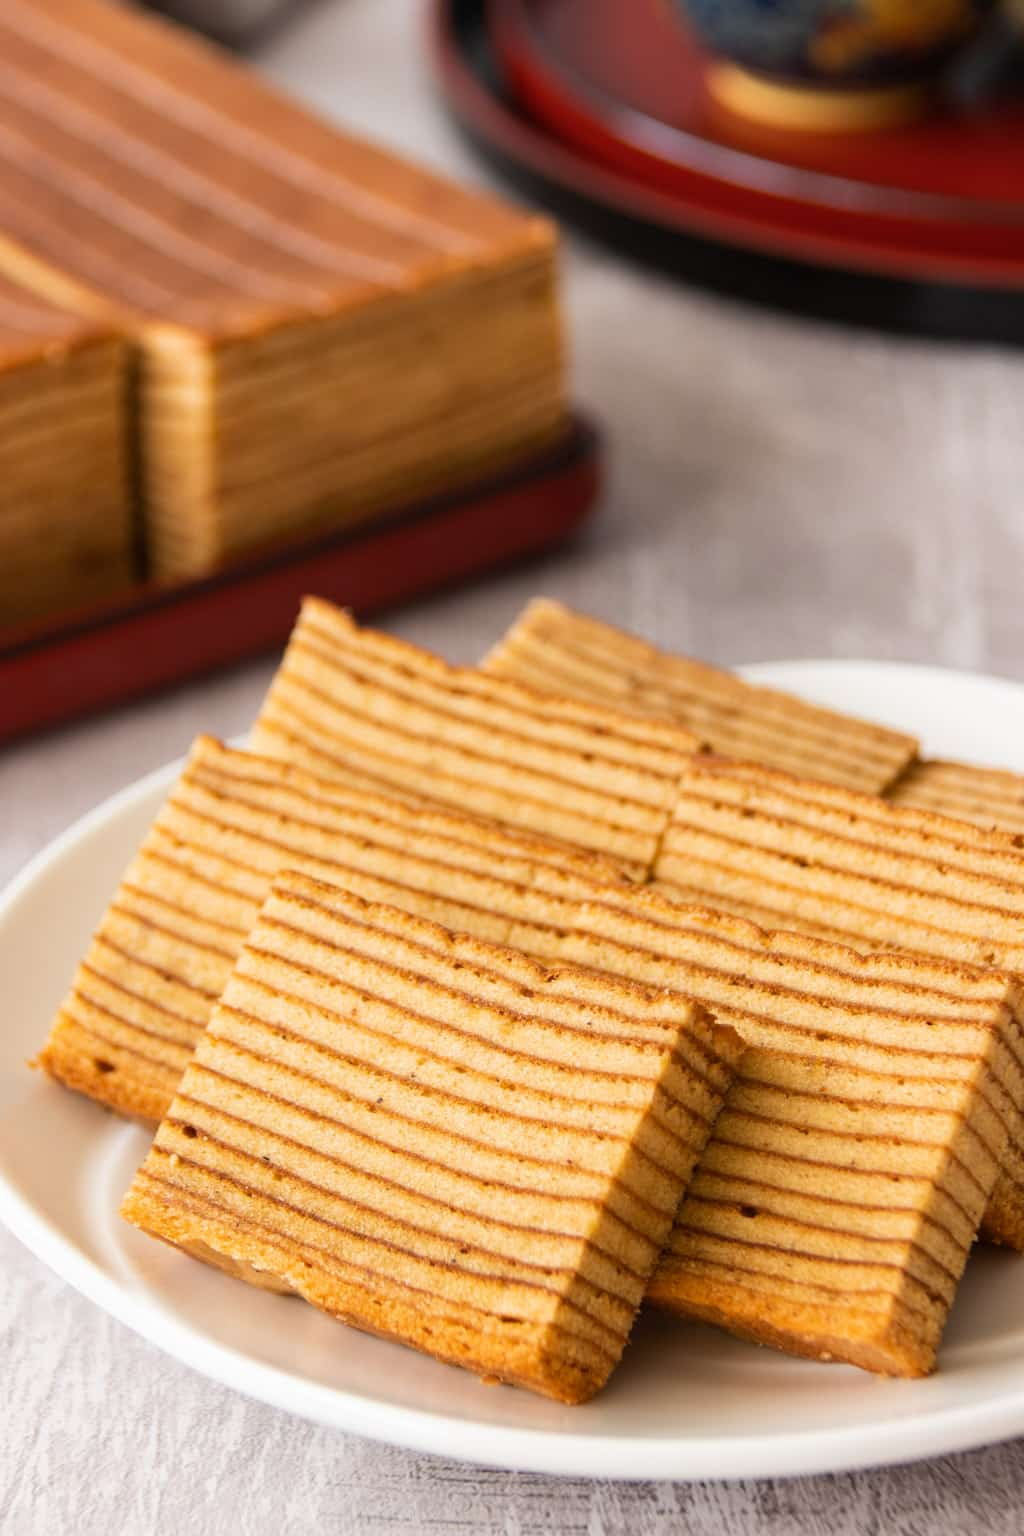 Indonesian layer cake, traditionally served as thin slices